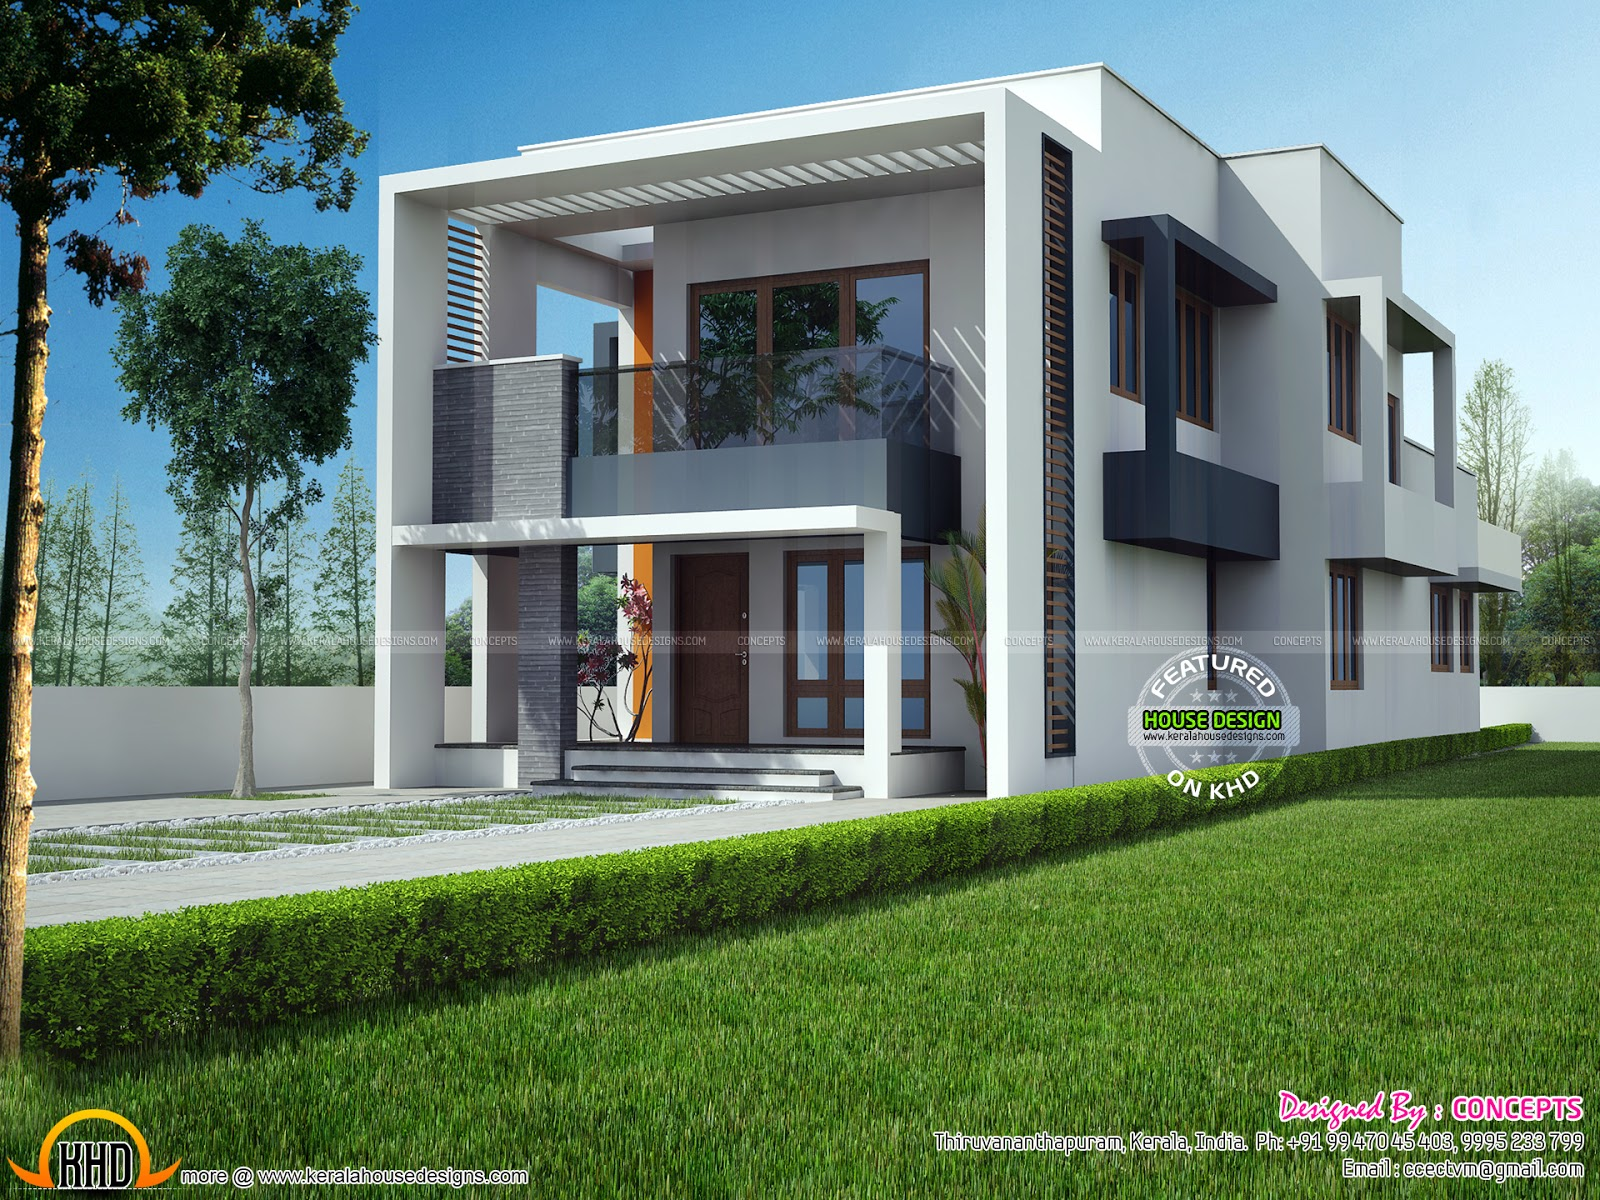 Floor plan available of this 2000 sq ft home kerala home for House plan for 2000 sq ft in india